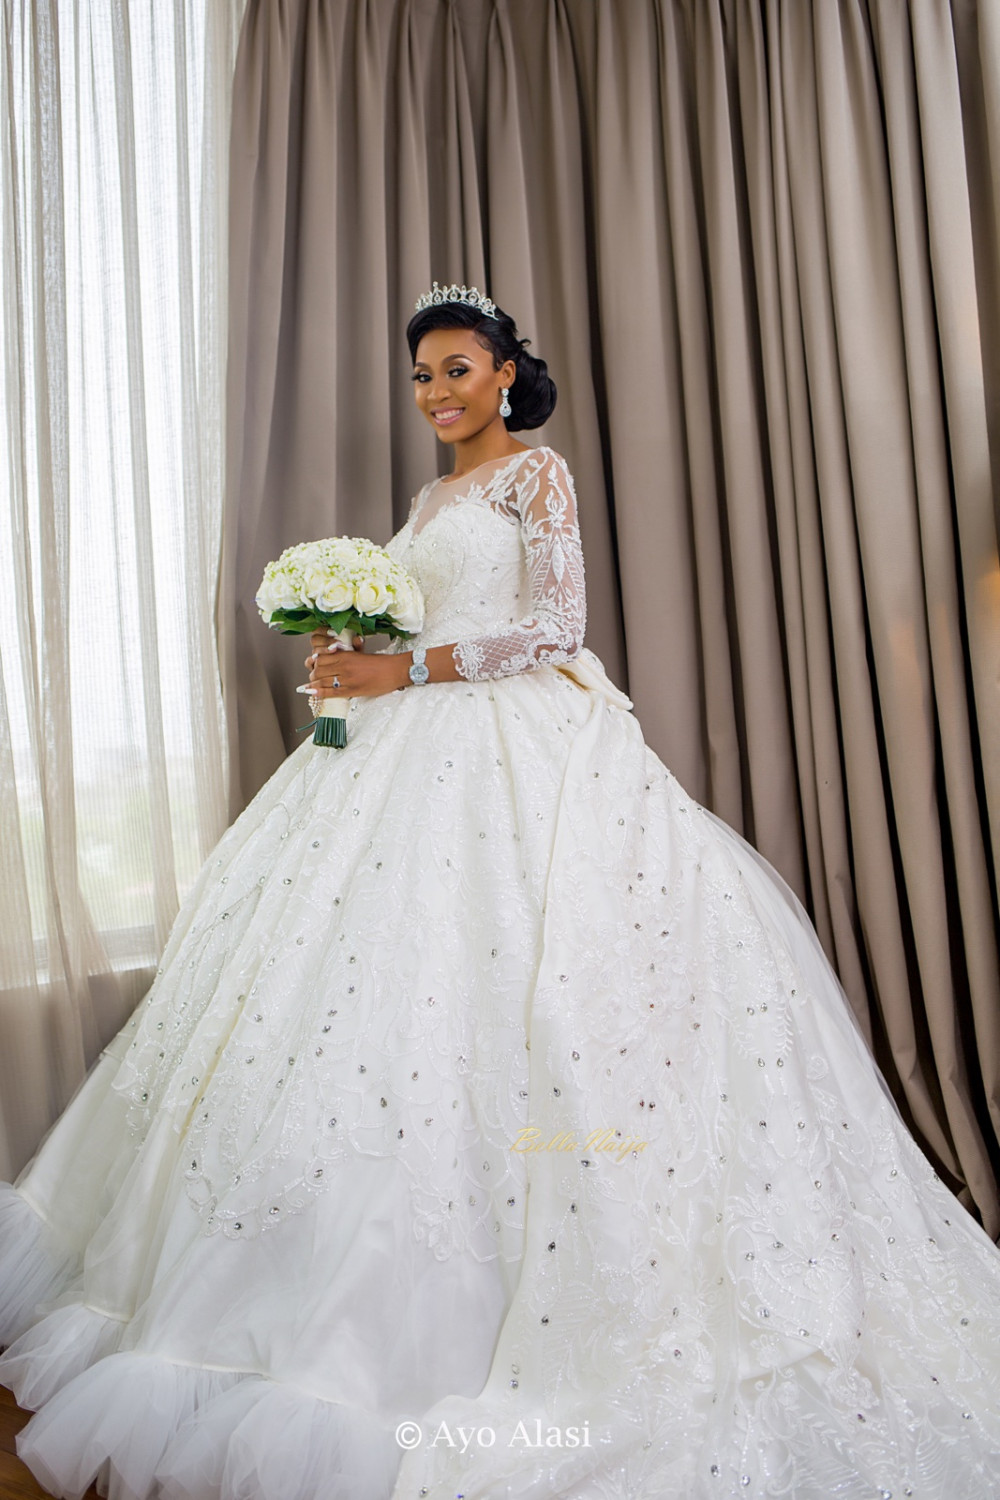 Yomi casual Grace Ayo Alasi BellaNaija weddings 28